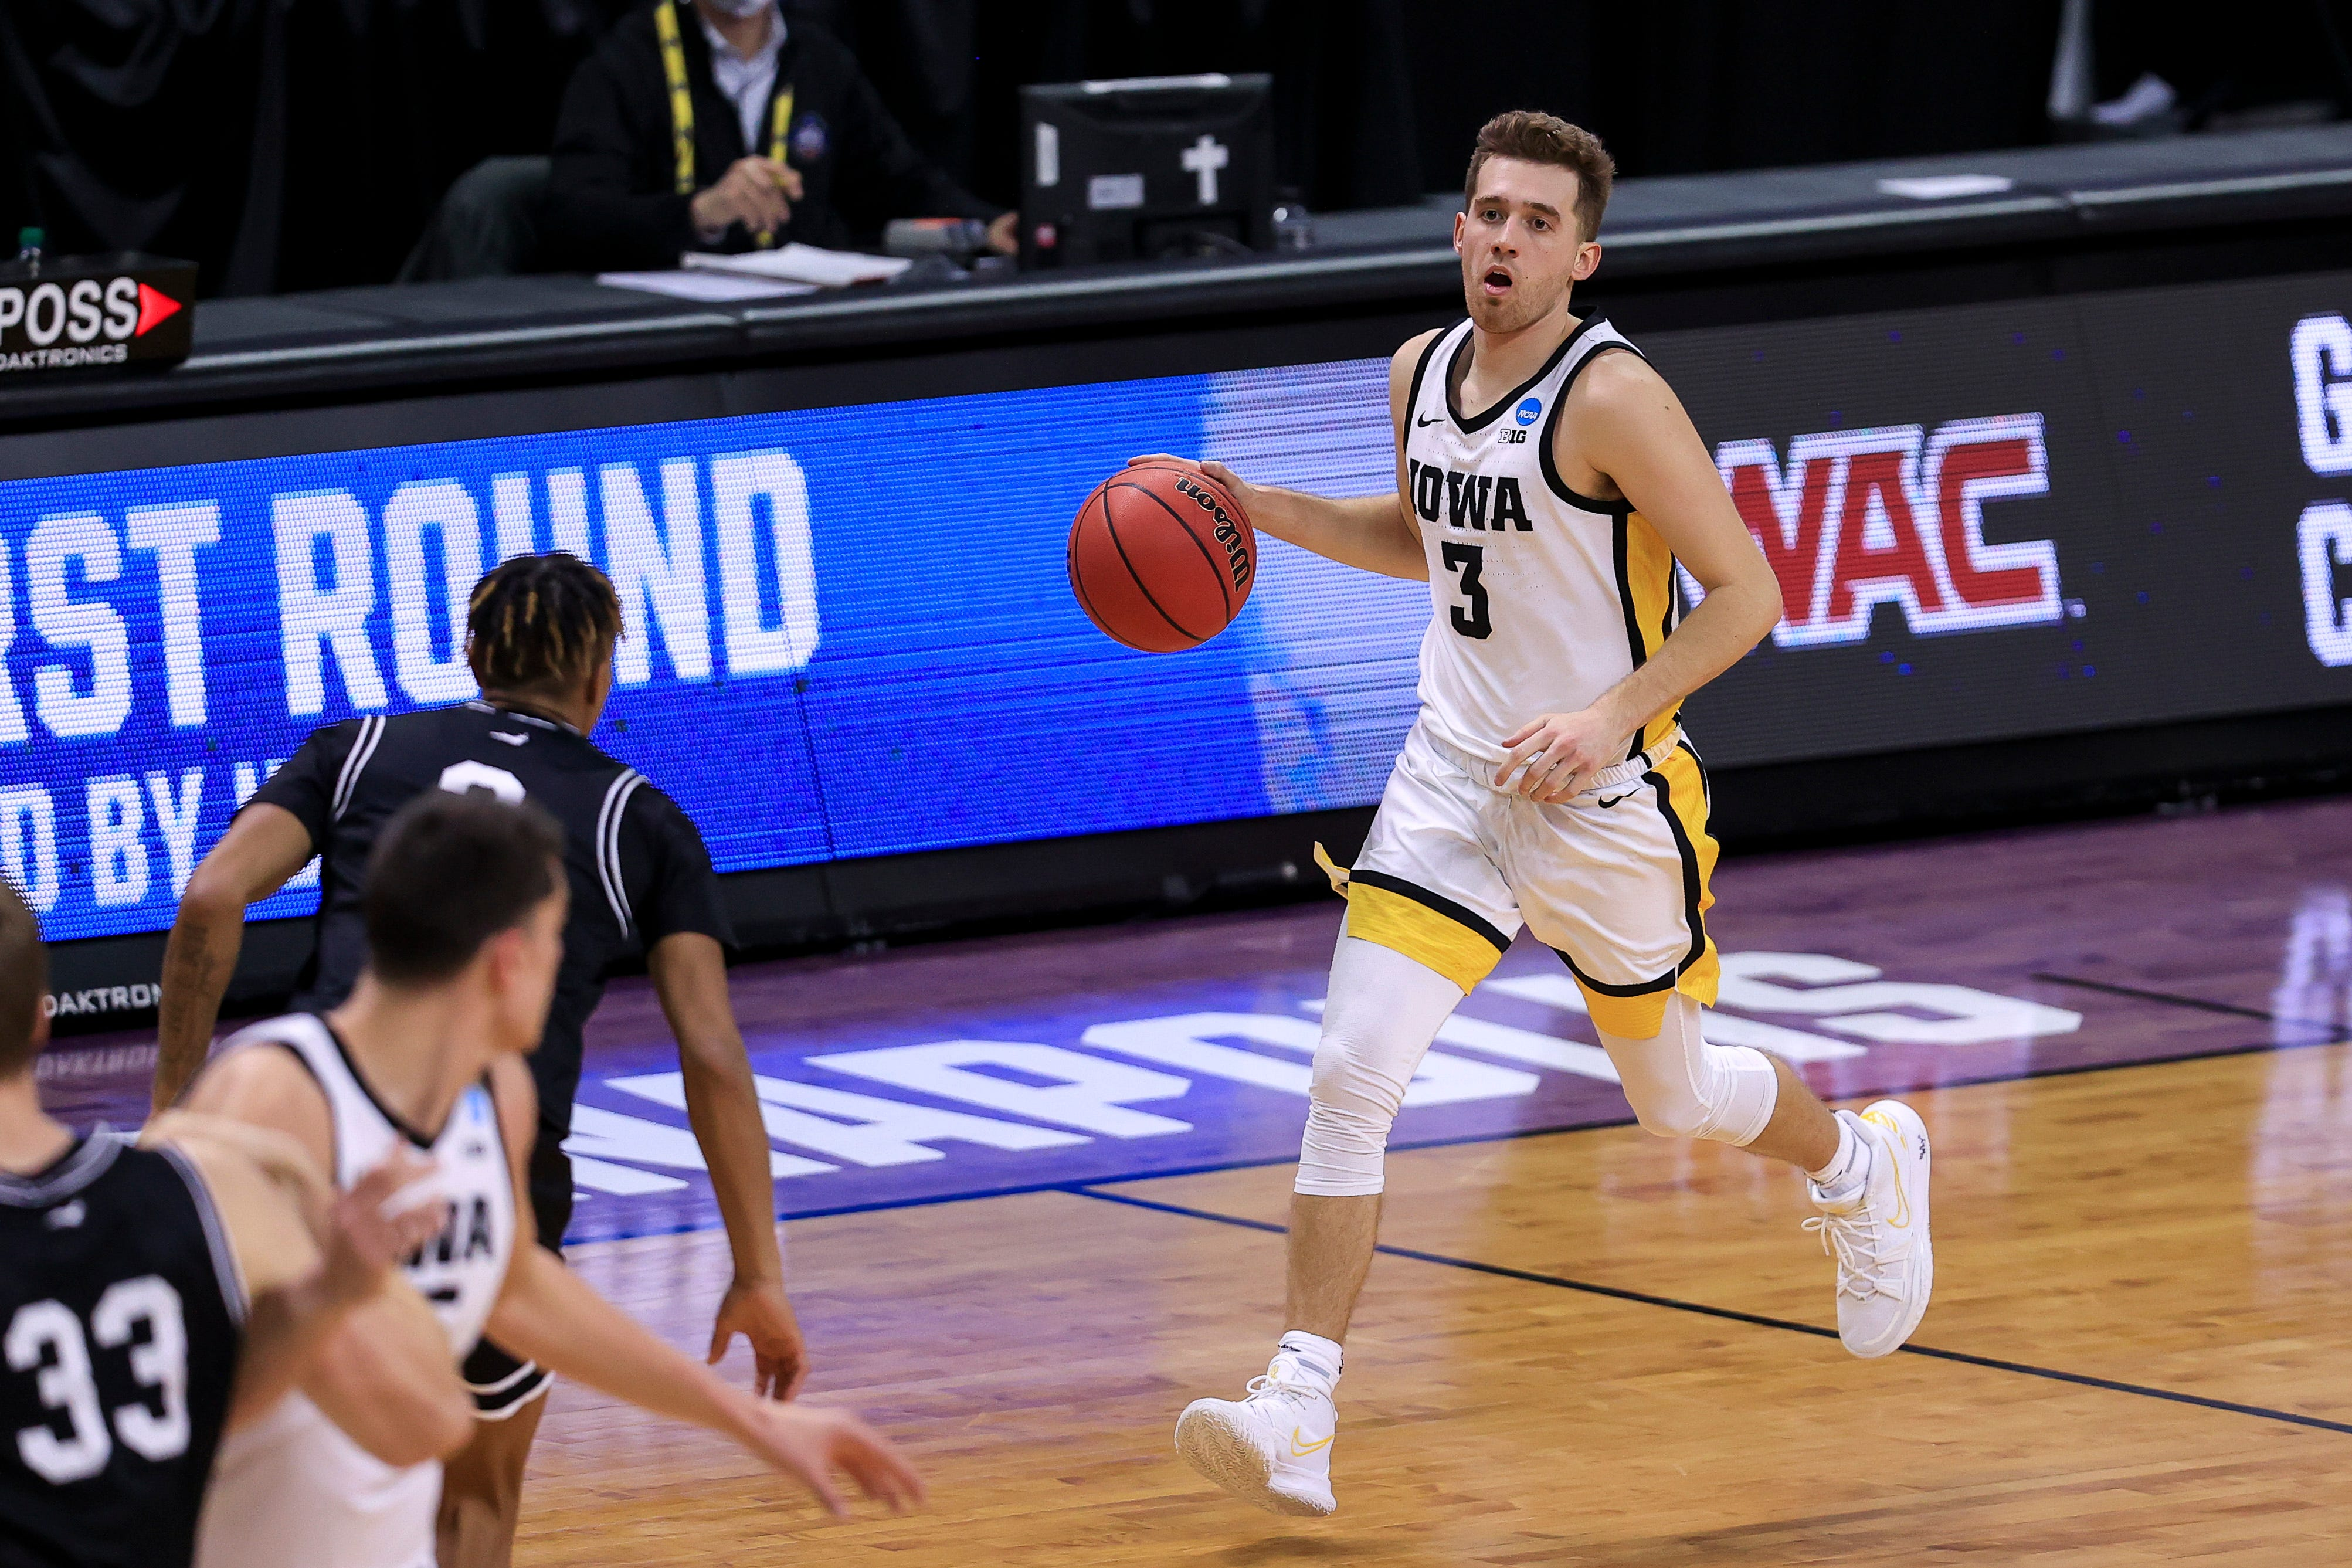 Iowa basketball's Jordan Bohannon receiving medical attention after serious head injury from physical altercation